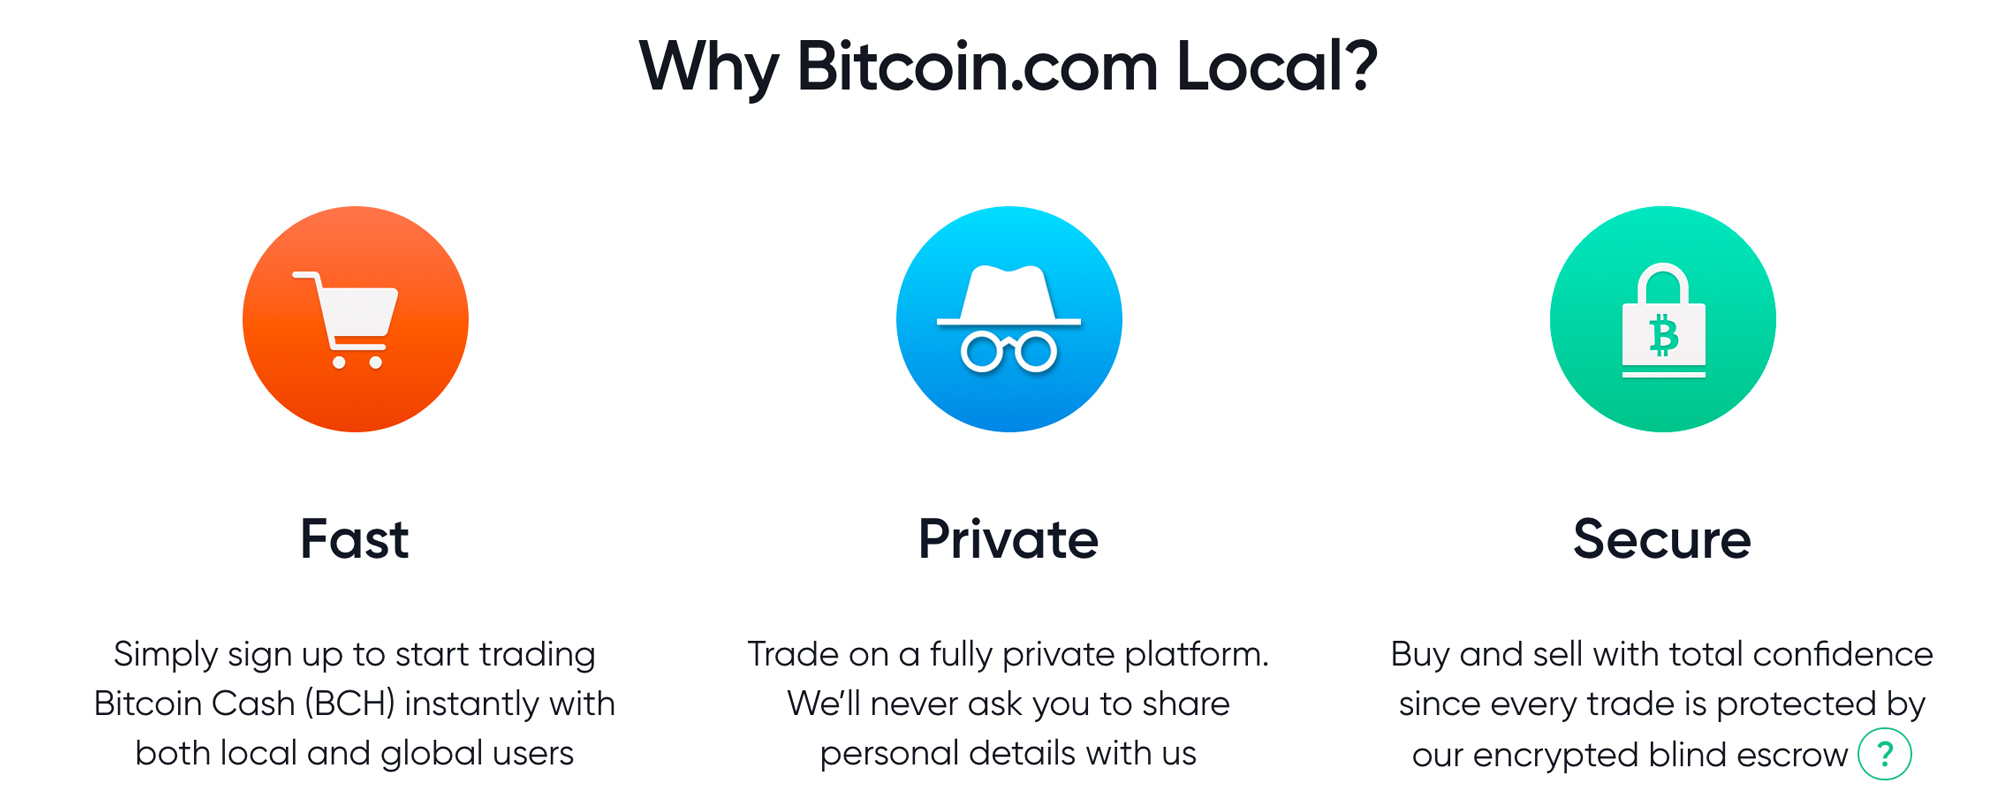 Bitcoin.com Local Gathers Steam as Other P2P Markets Falter